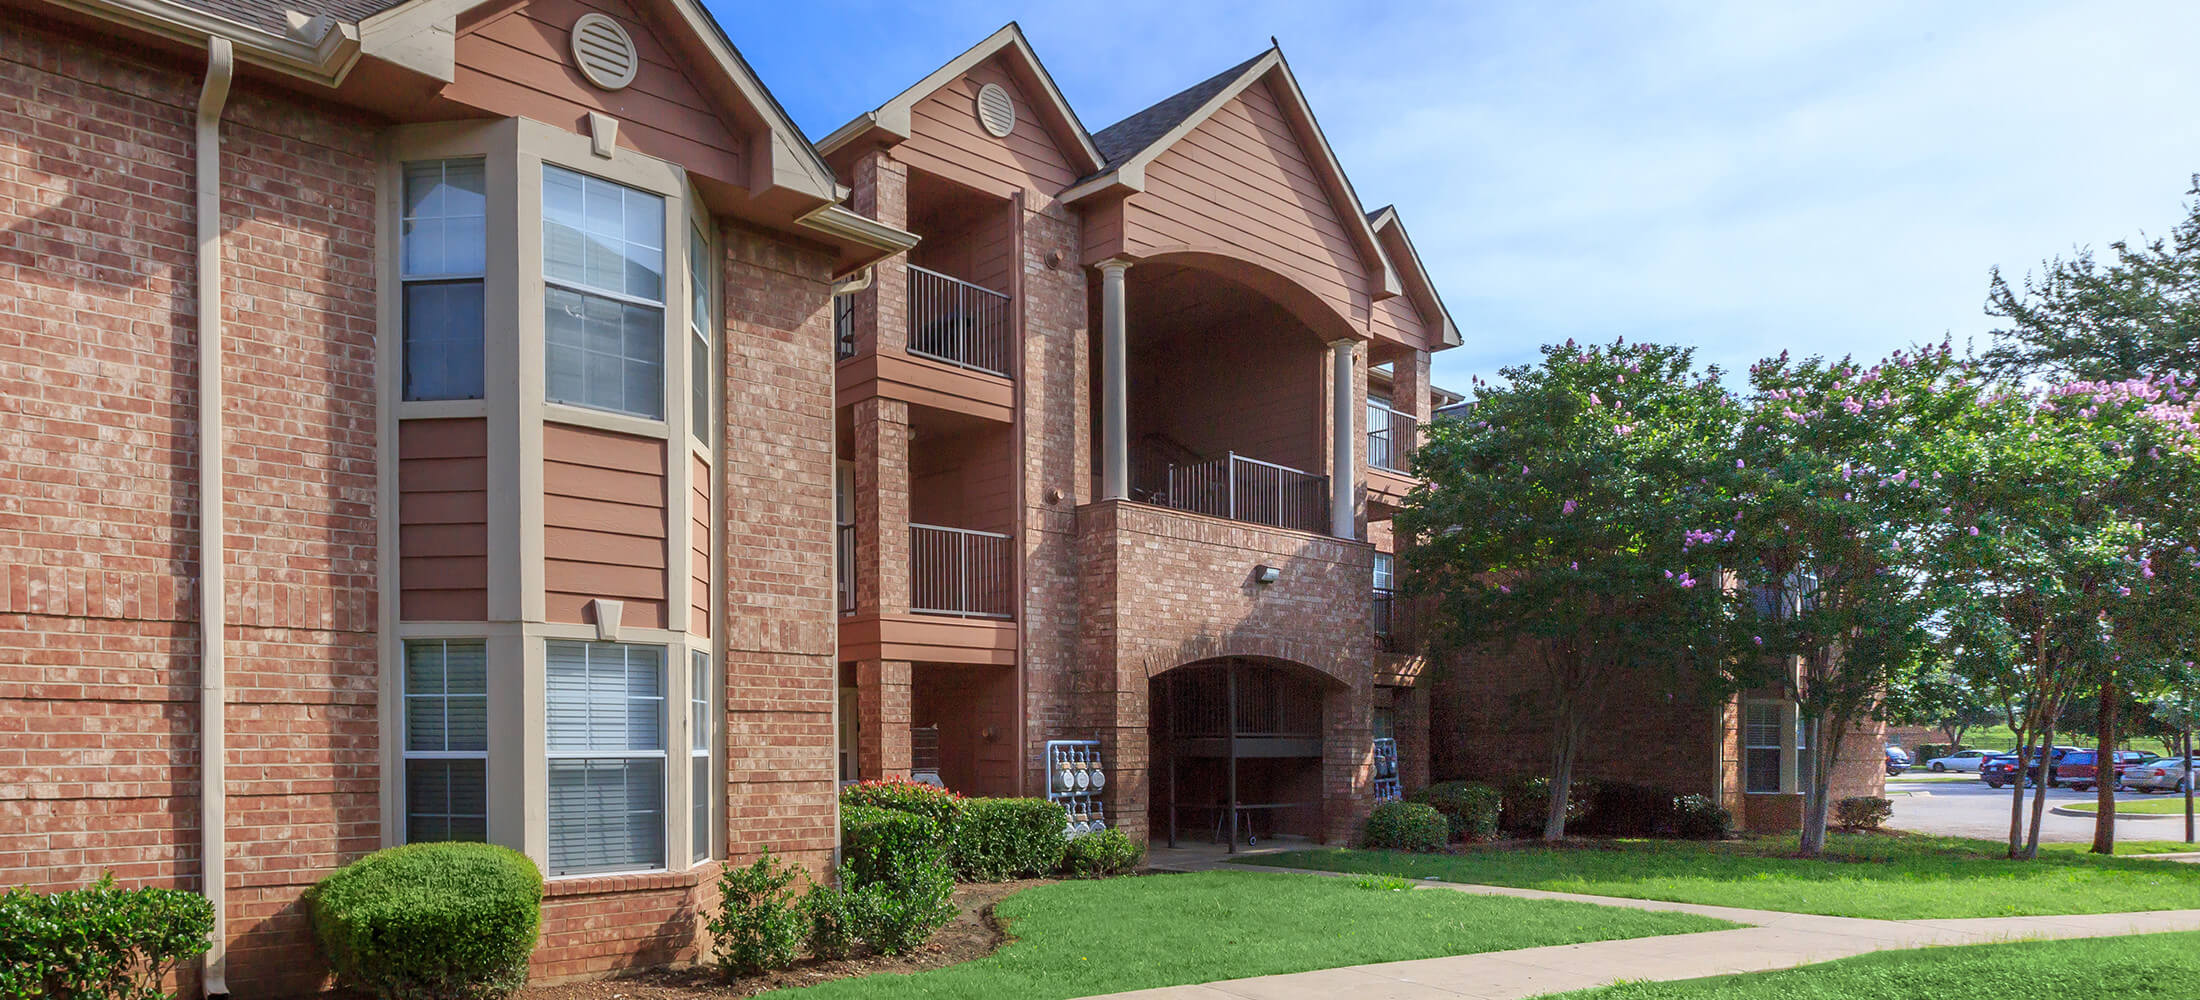 Valley Ranch Apartments - Best Appartment Image 2018